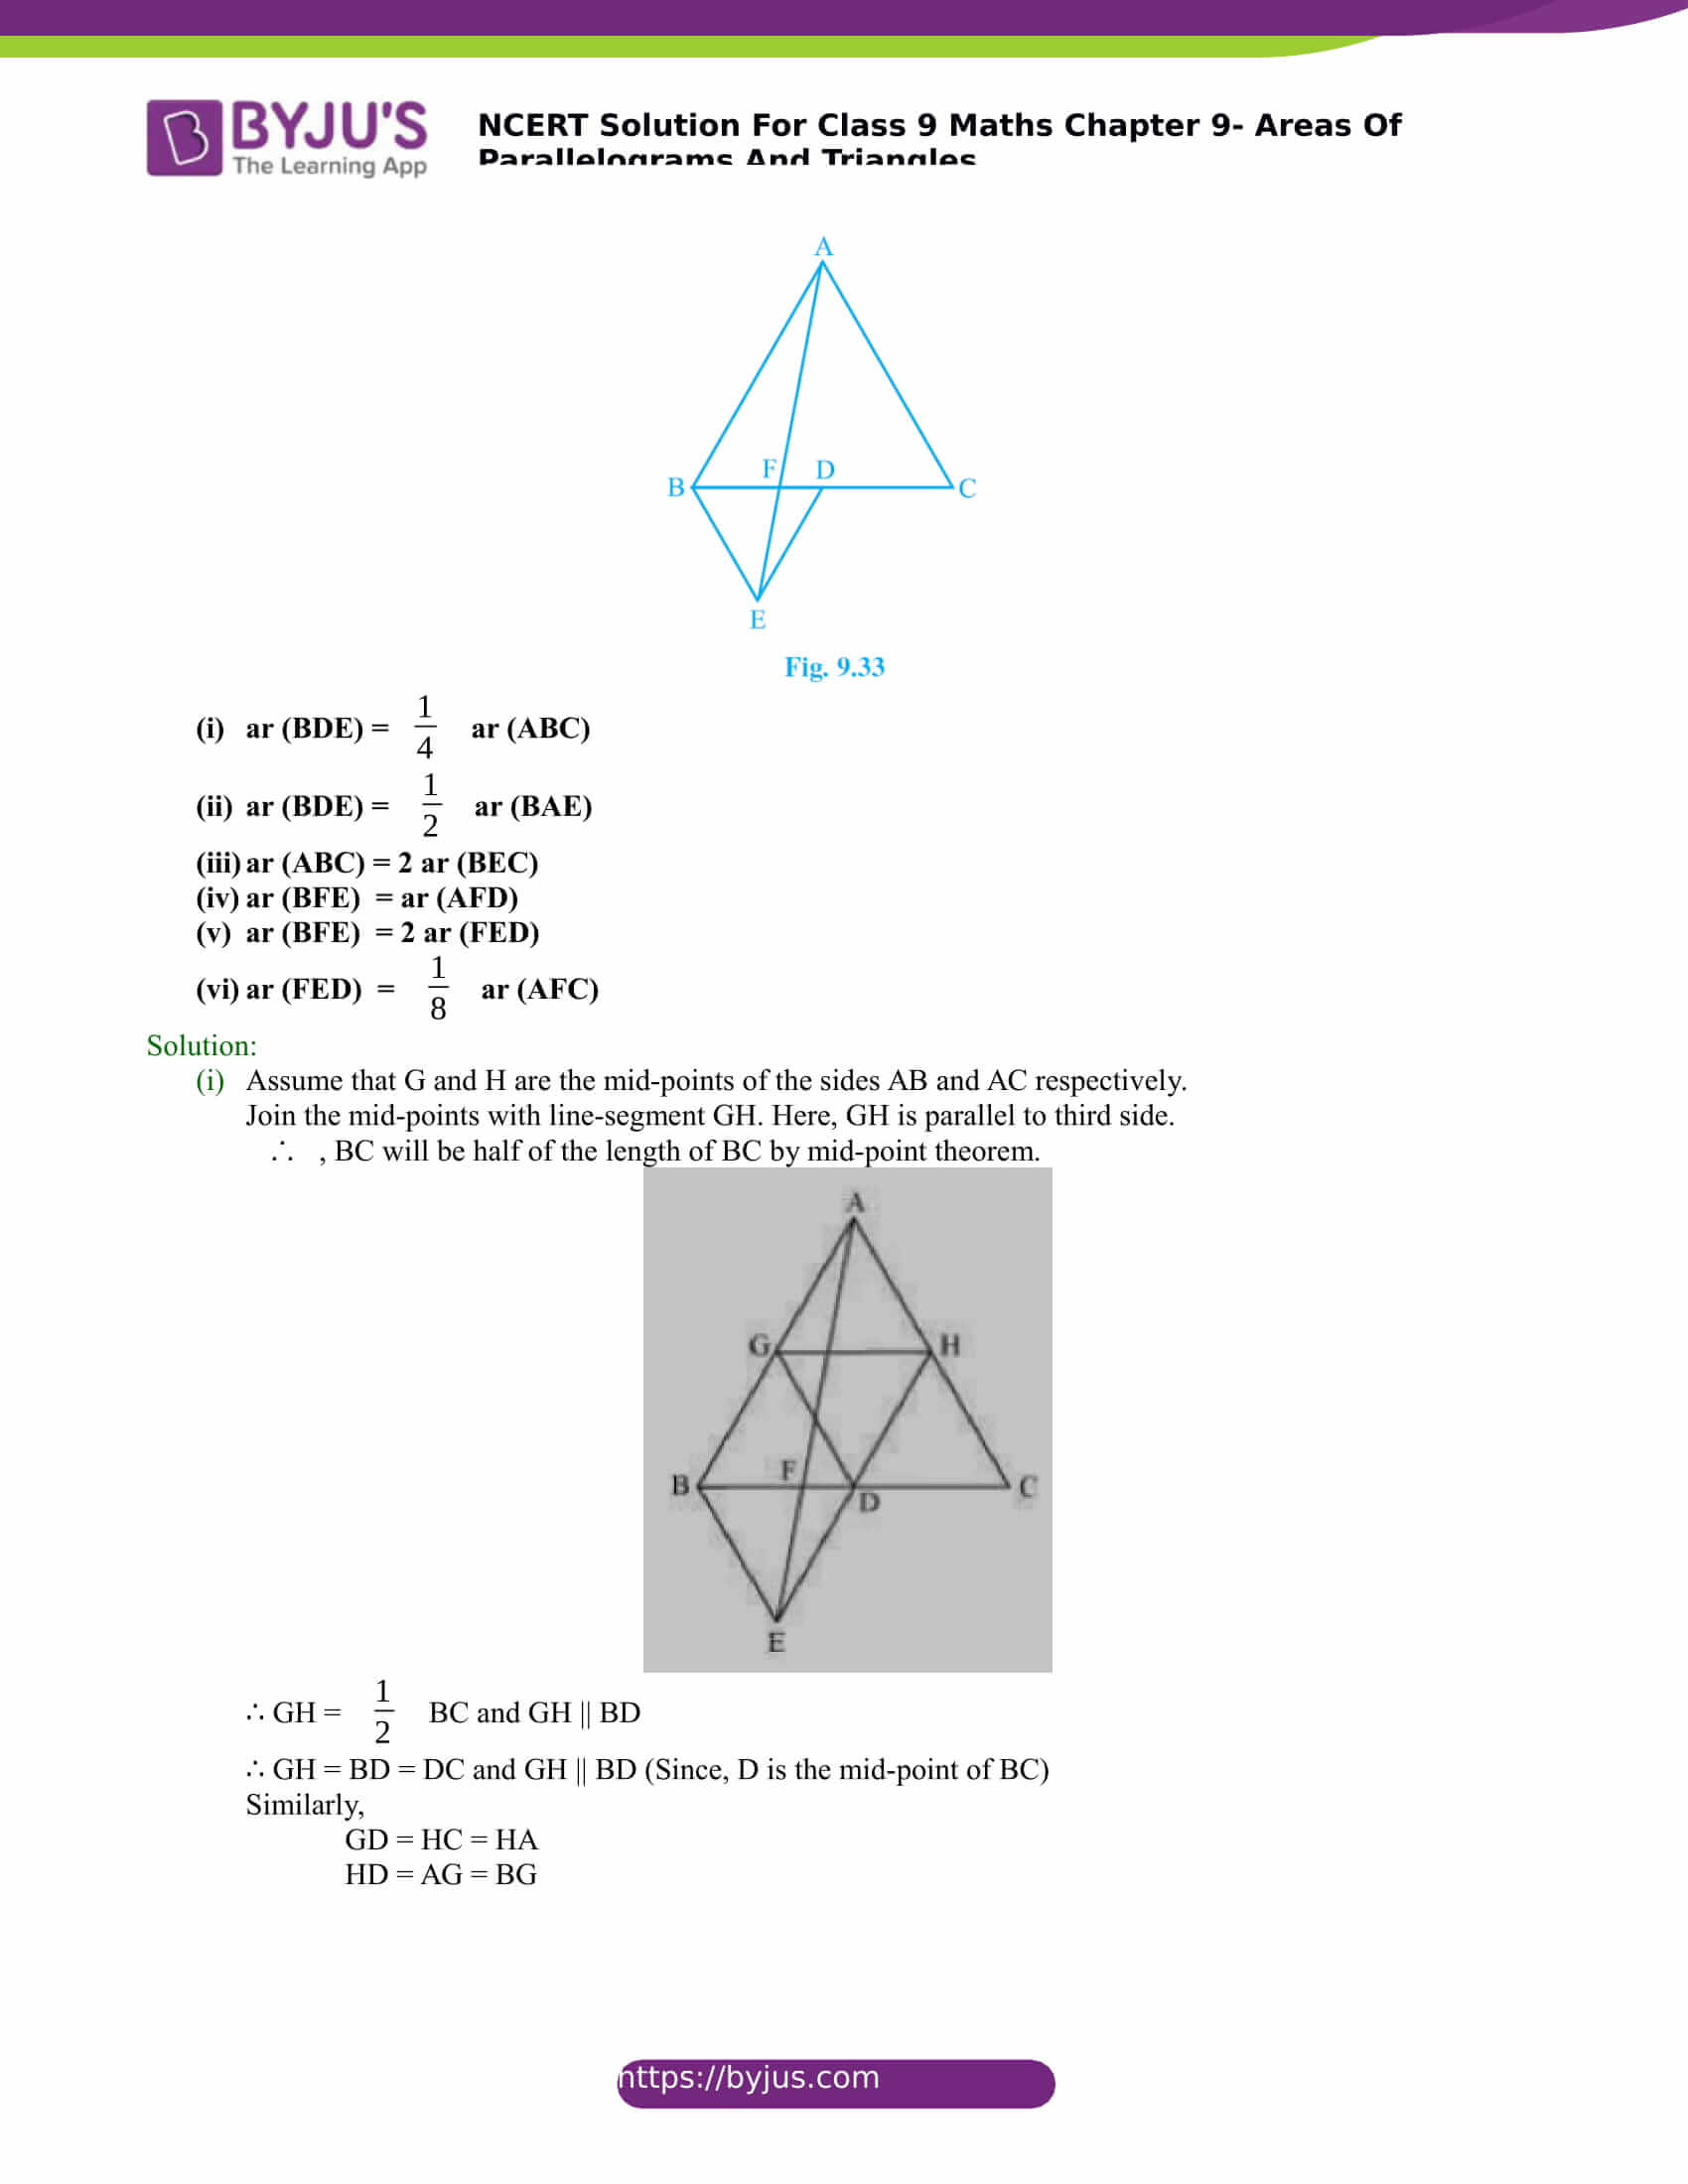 NCERT Solutions for class 9 Maths Chapter 9 Areas of parallelograms and triangles Part 23